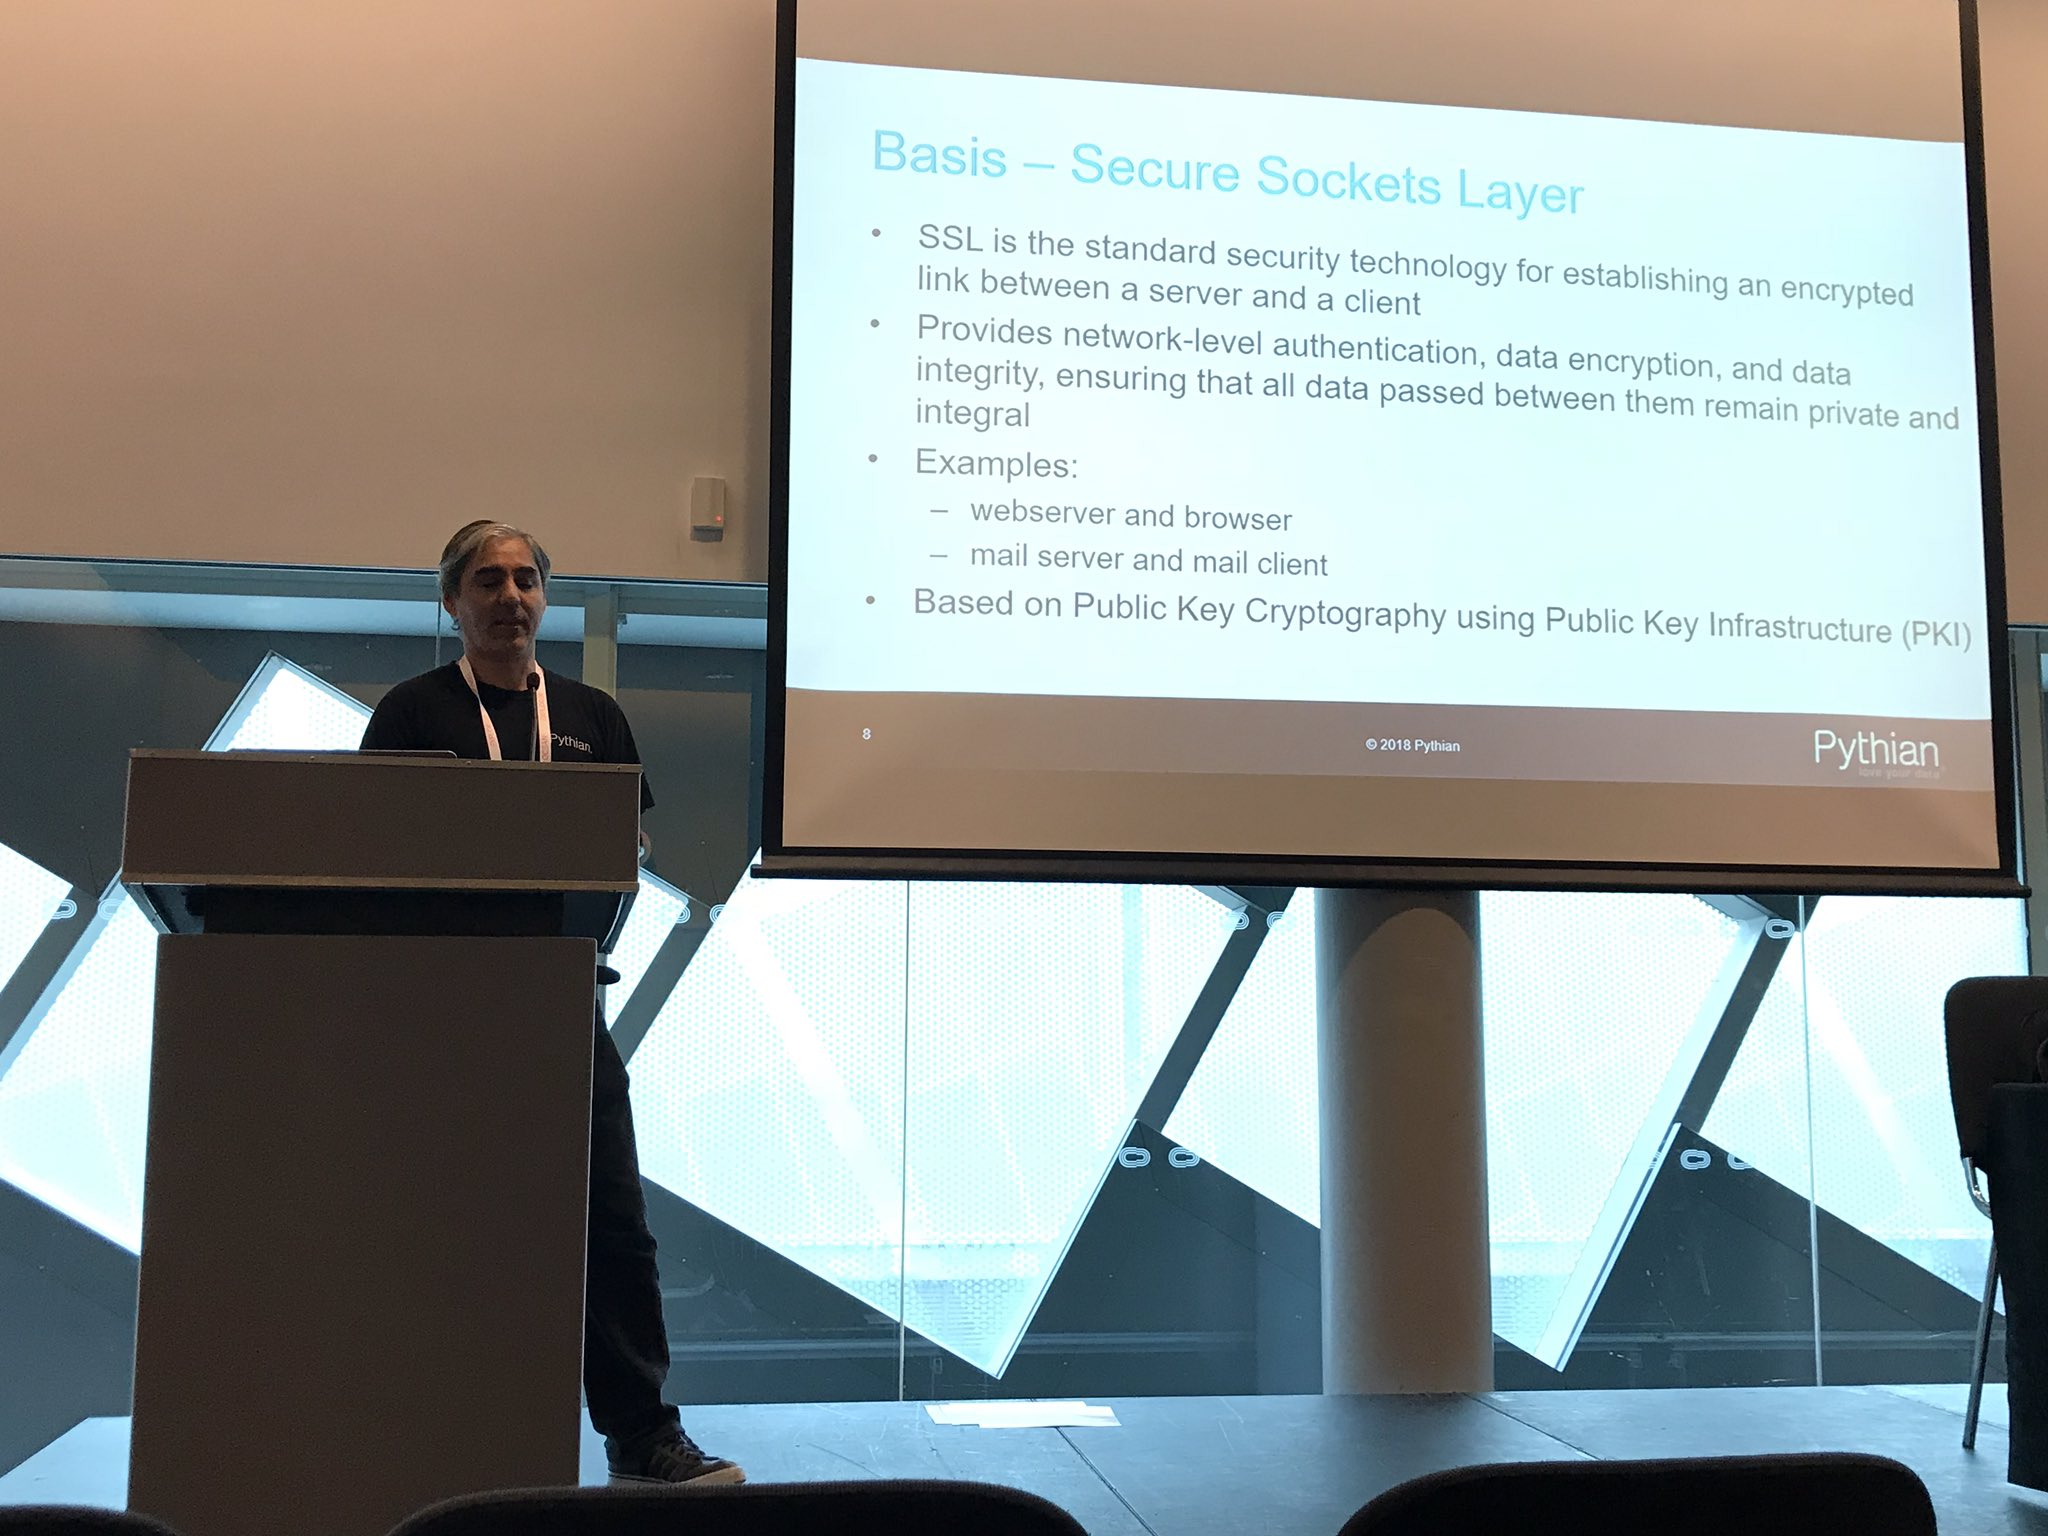 At #ukoug_tech18 @ncalerouy talking about SSL certificates in Oracle Database. @oracleace @Pythian https://t.co/FVpNwPYLnx